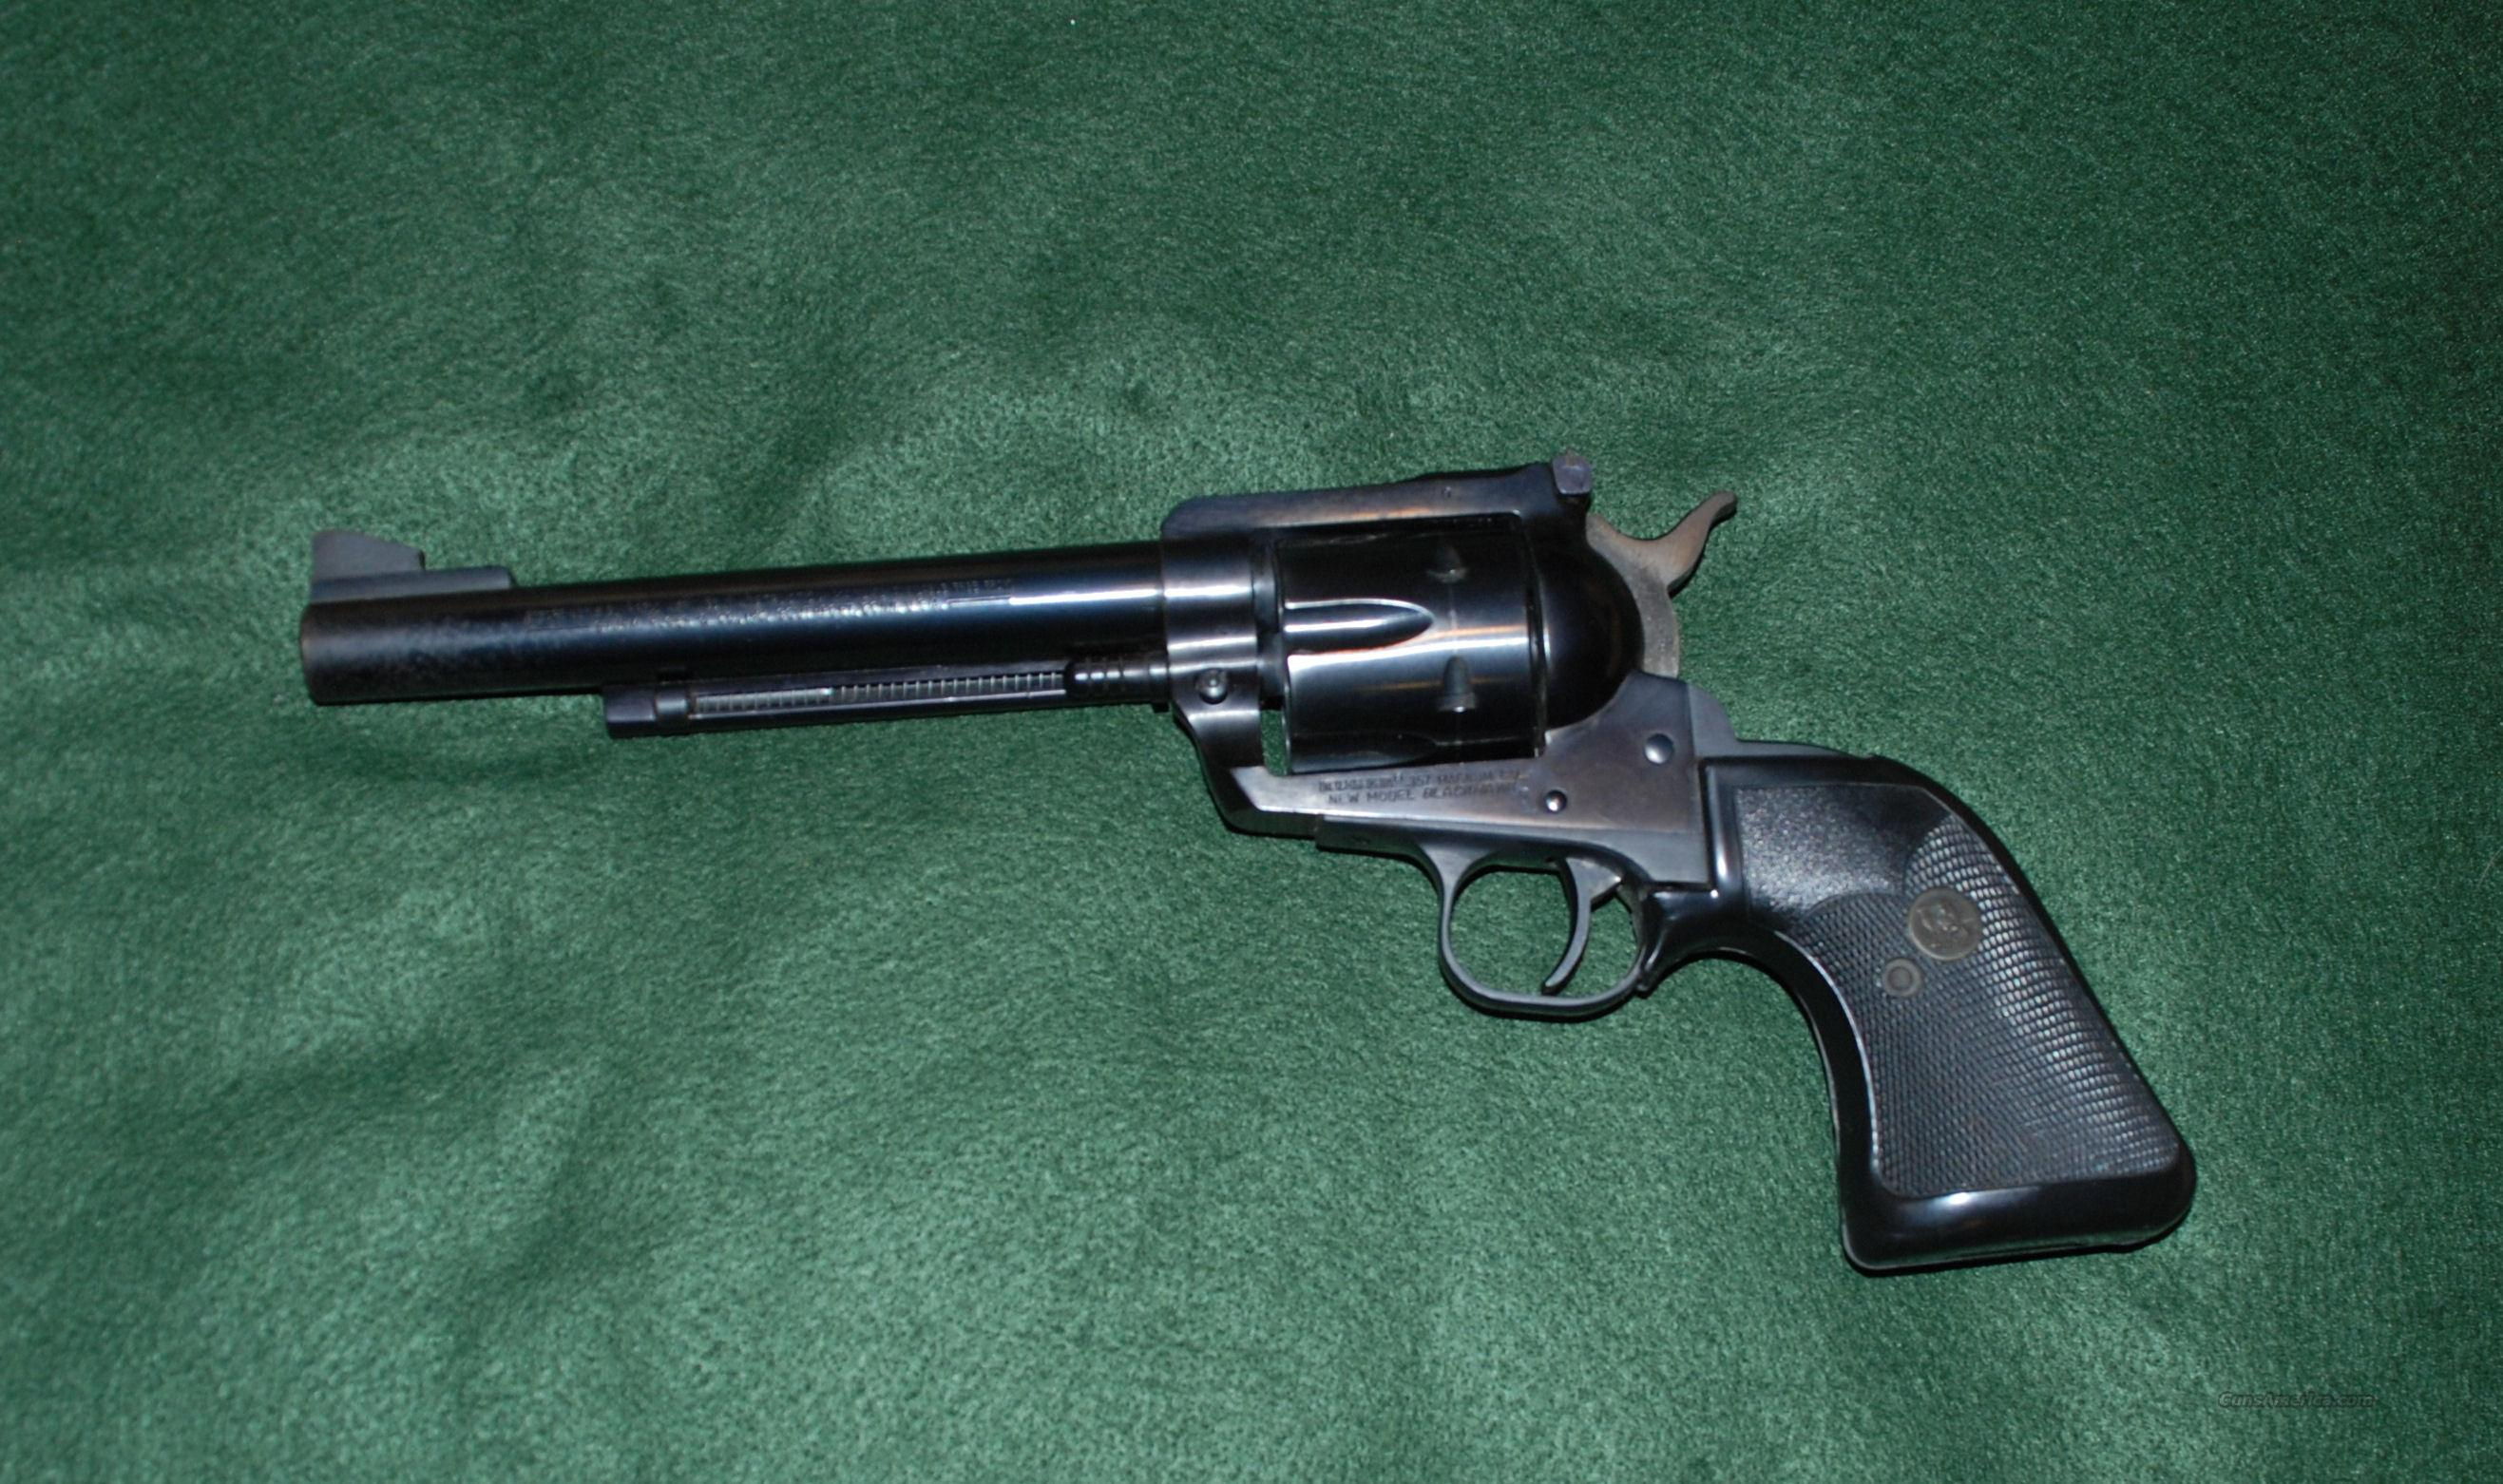 Ruger New Model Blackhawk  357 Mag  Guns > Pistols > Ruger Single Action Revolvers > Blackhawk Type